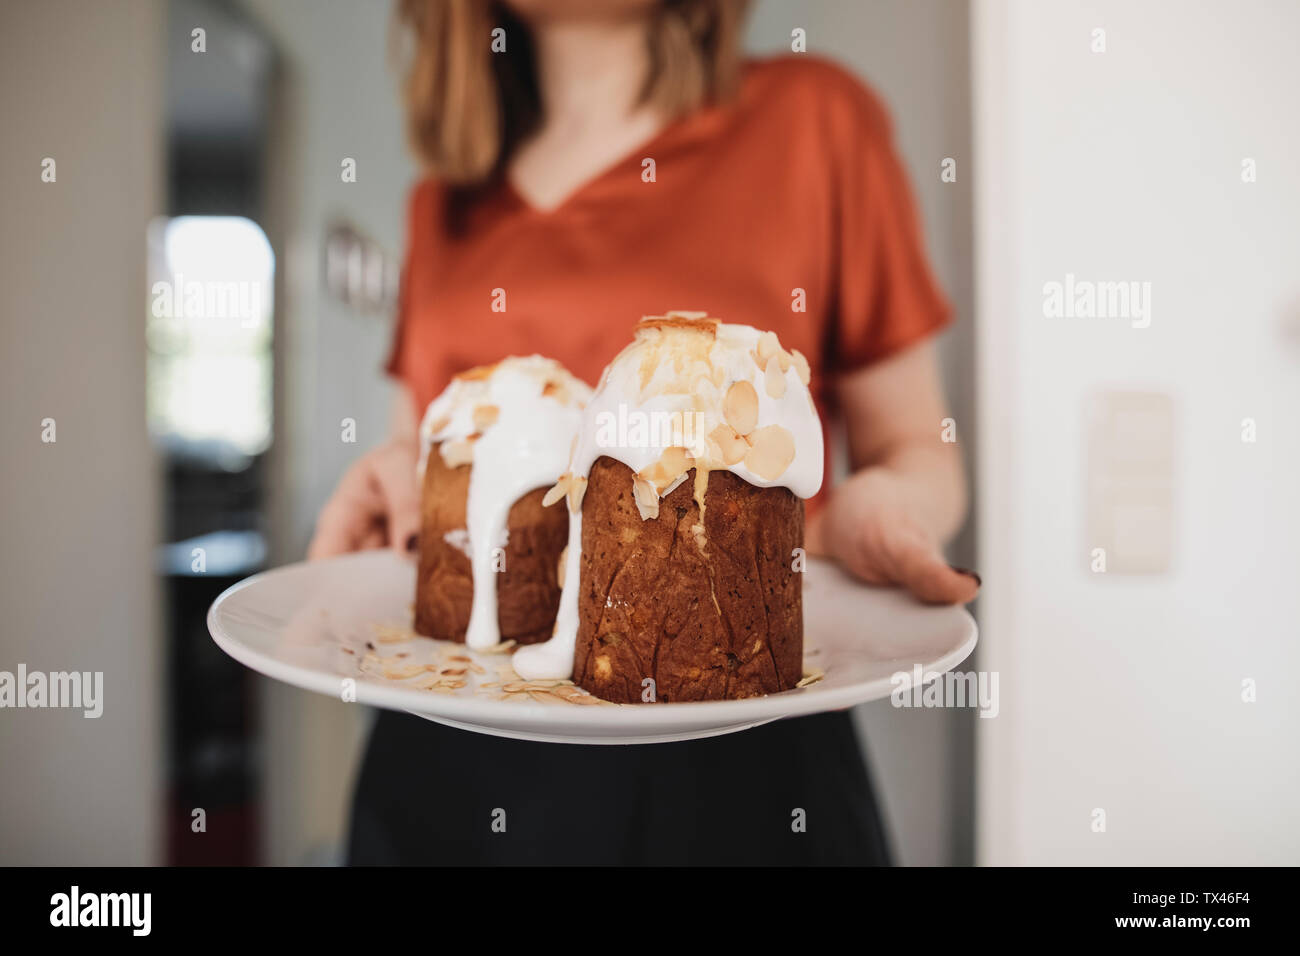 Woman serving garnished cake on plate Stock Photo